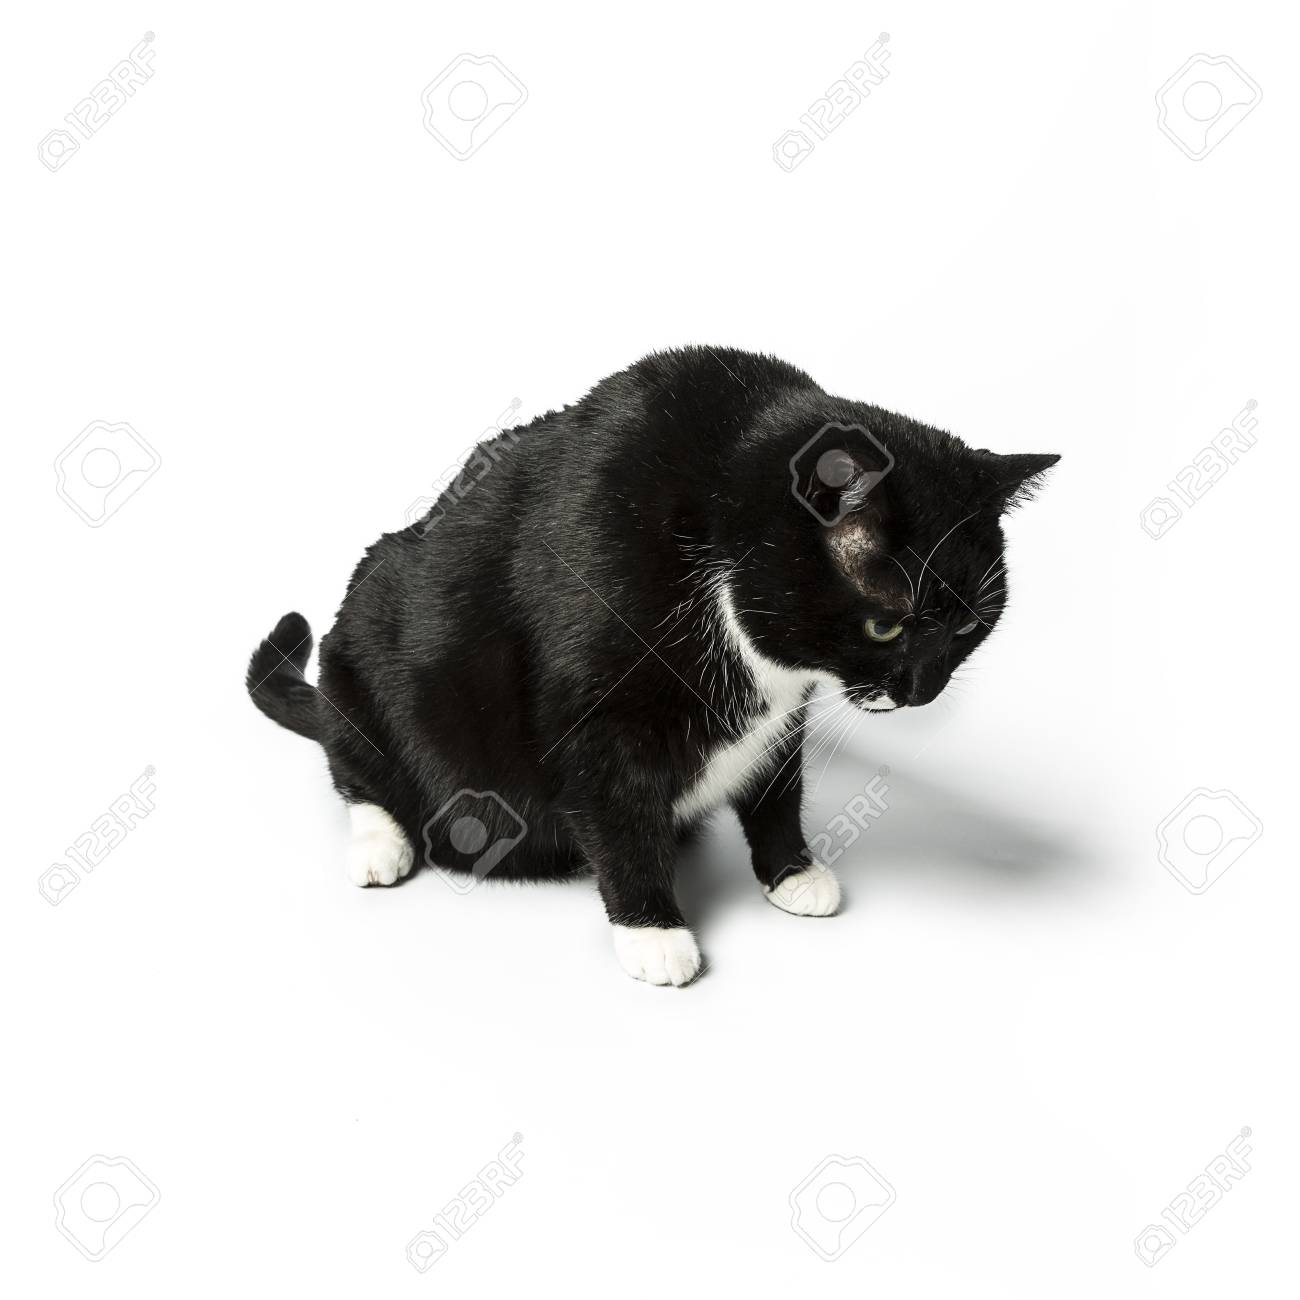 cat isolated black exempted domestic cat pet kitty kitty meow looking whisker faithful Stock Photo - 24971759